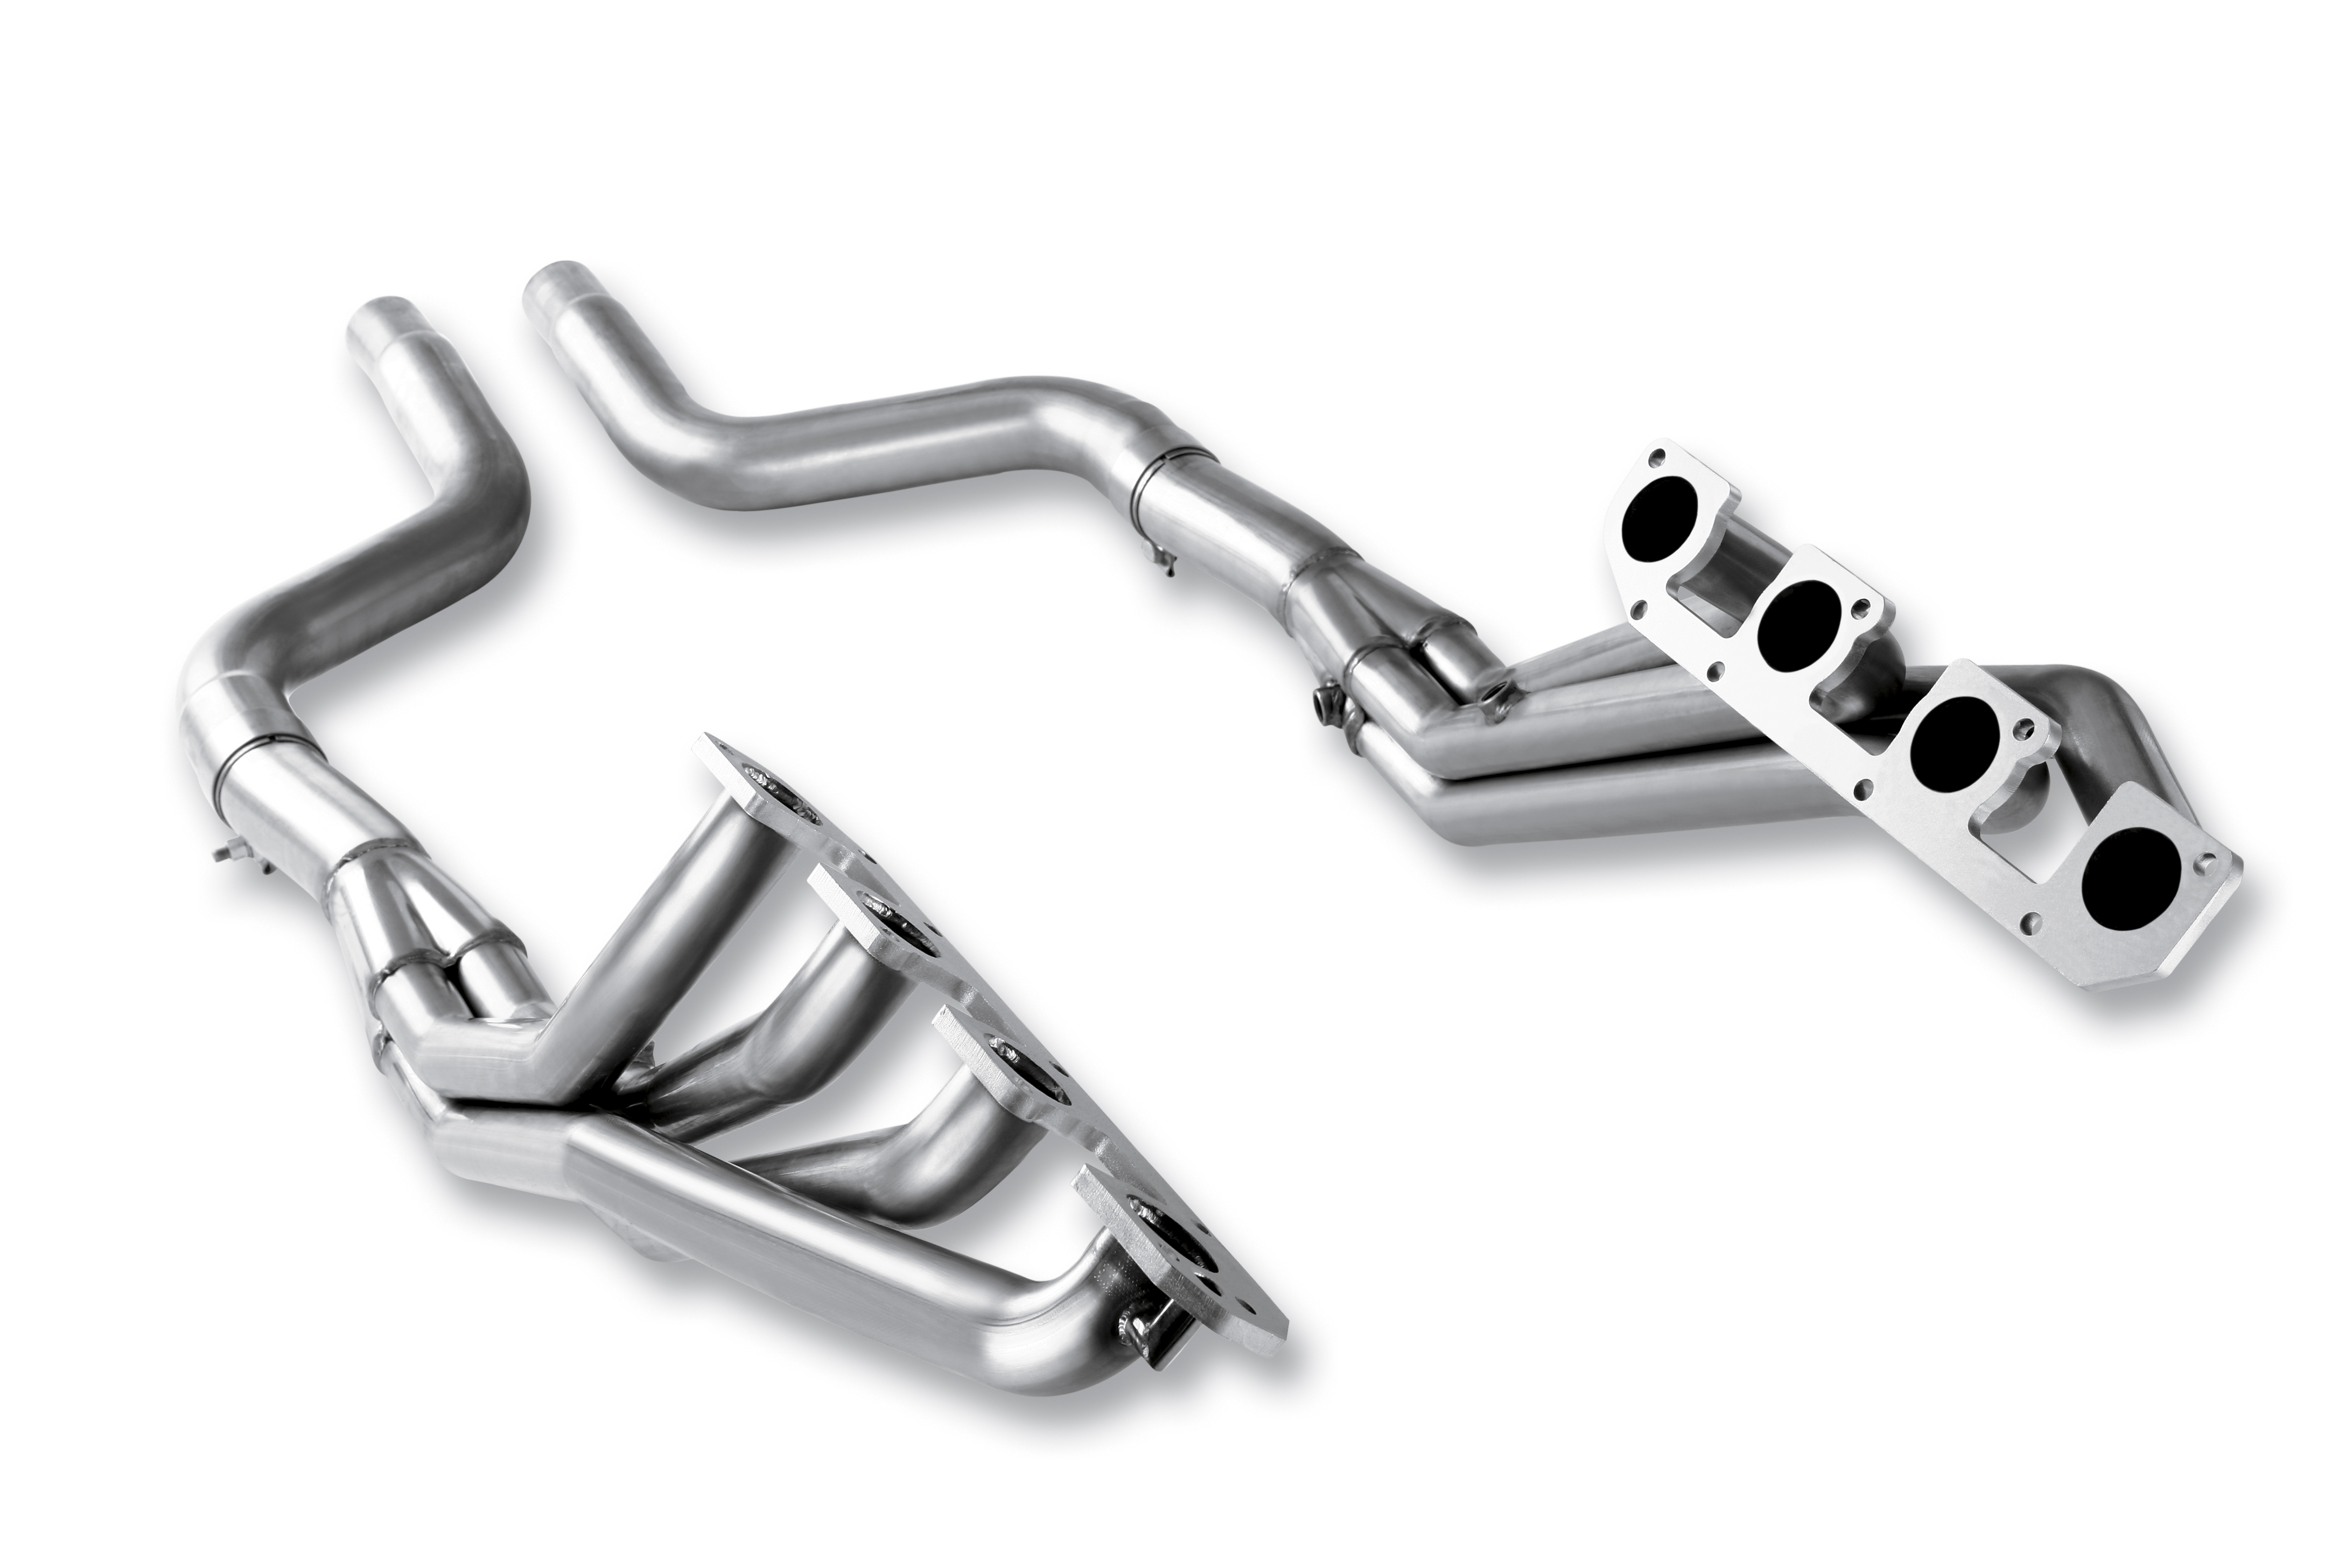 Chrysler 300C 5.7l V8 2005-2008 Borla Long Tube Exhaust Headers (offroad Only)